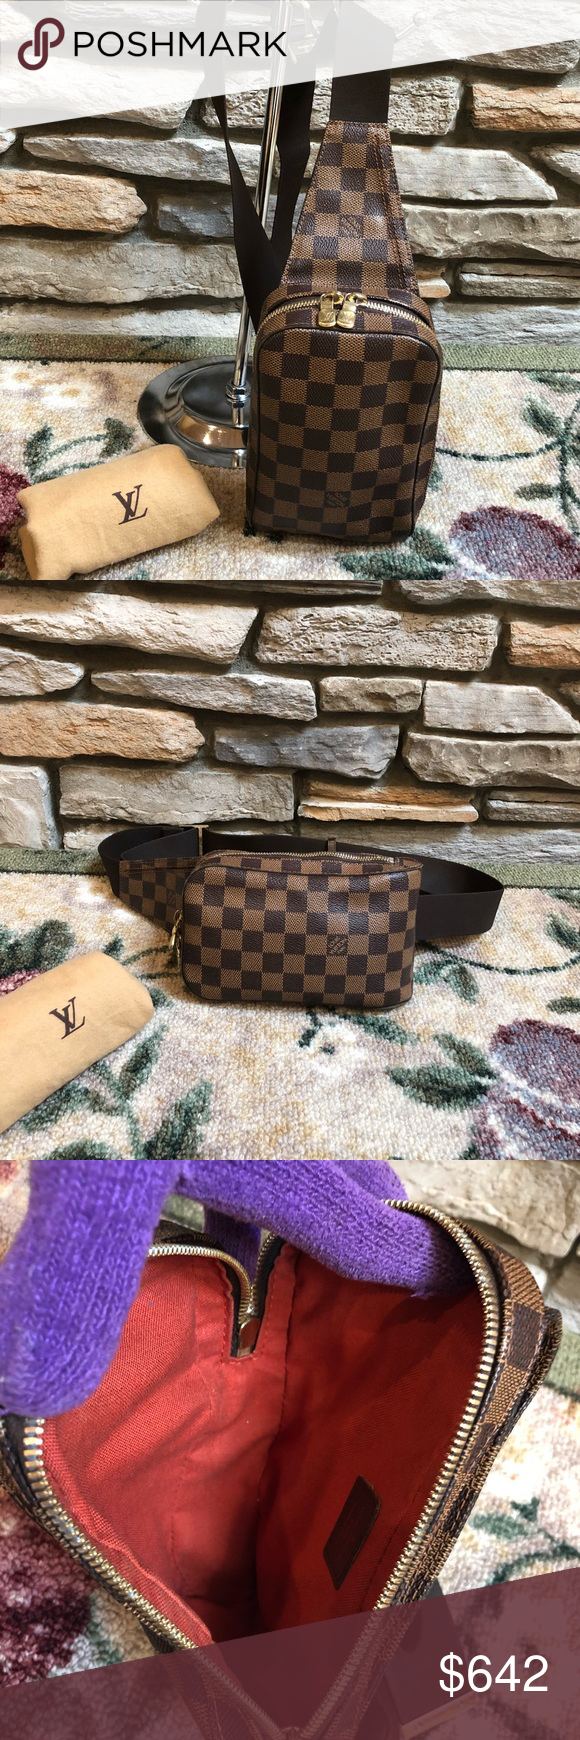 0f57e9817818 Louis Vuitton Damier Ebene Geronimo Belt Bag 100% Authentic Preowned Used  Made in Spain